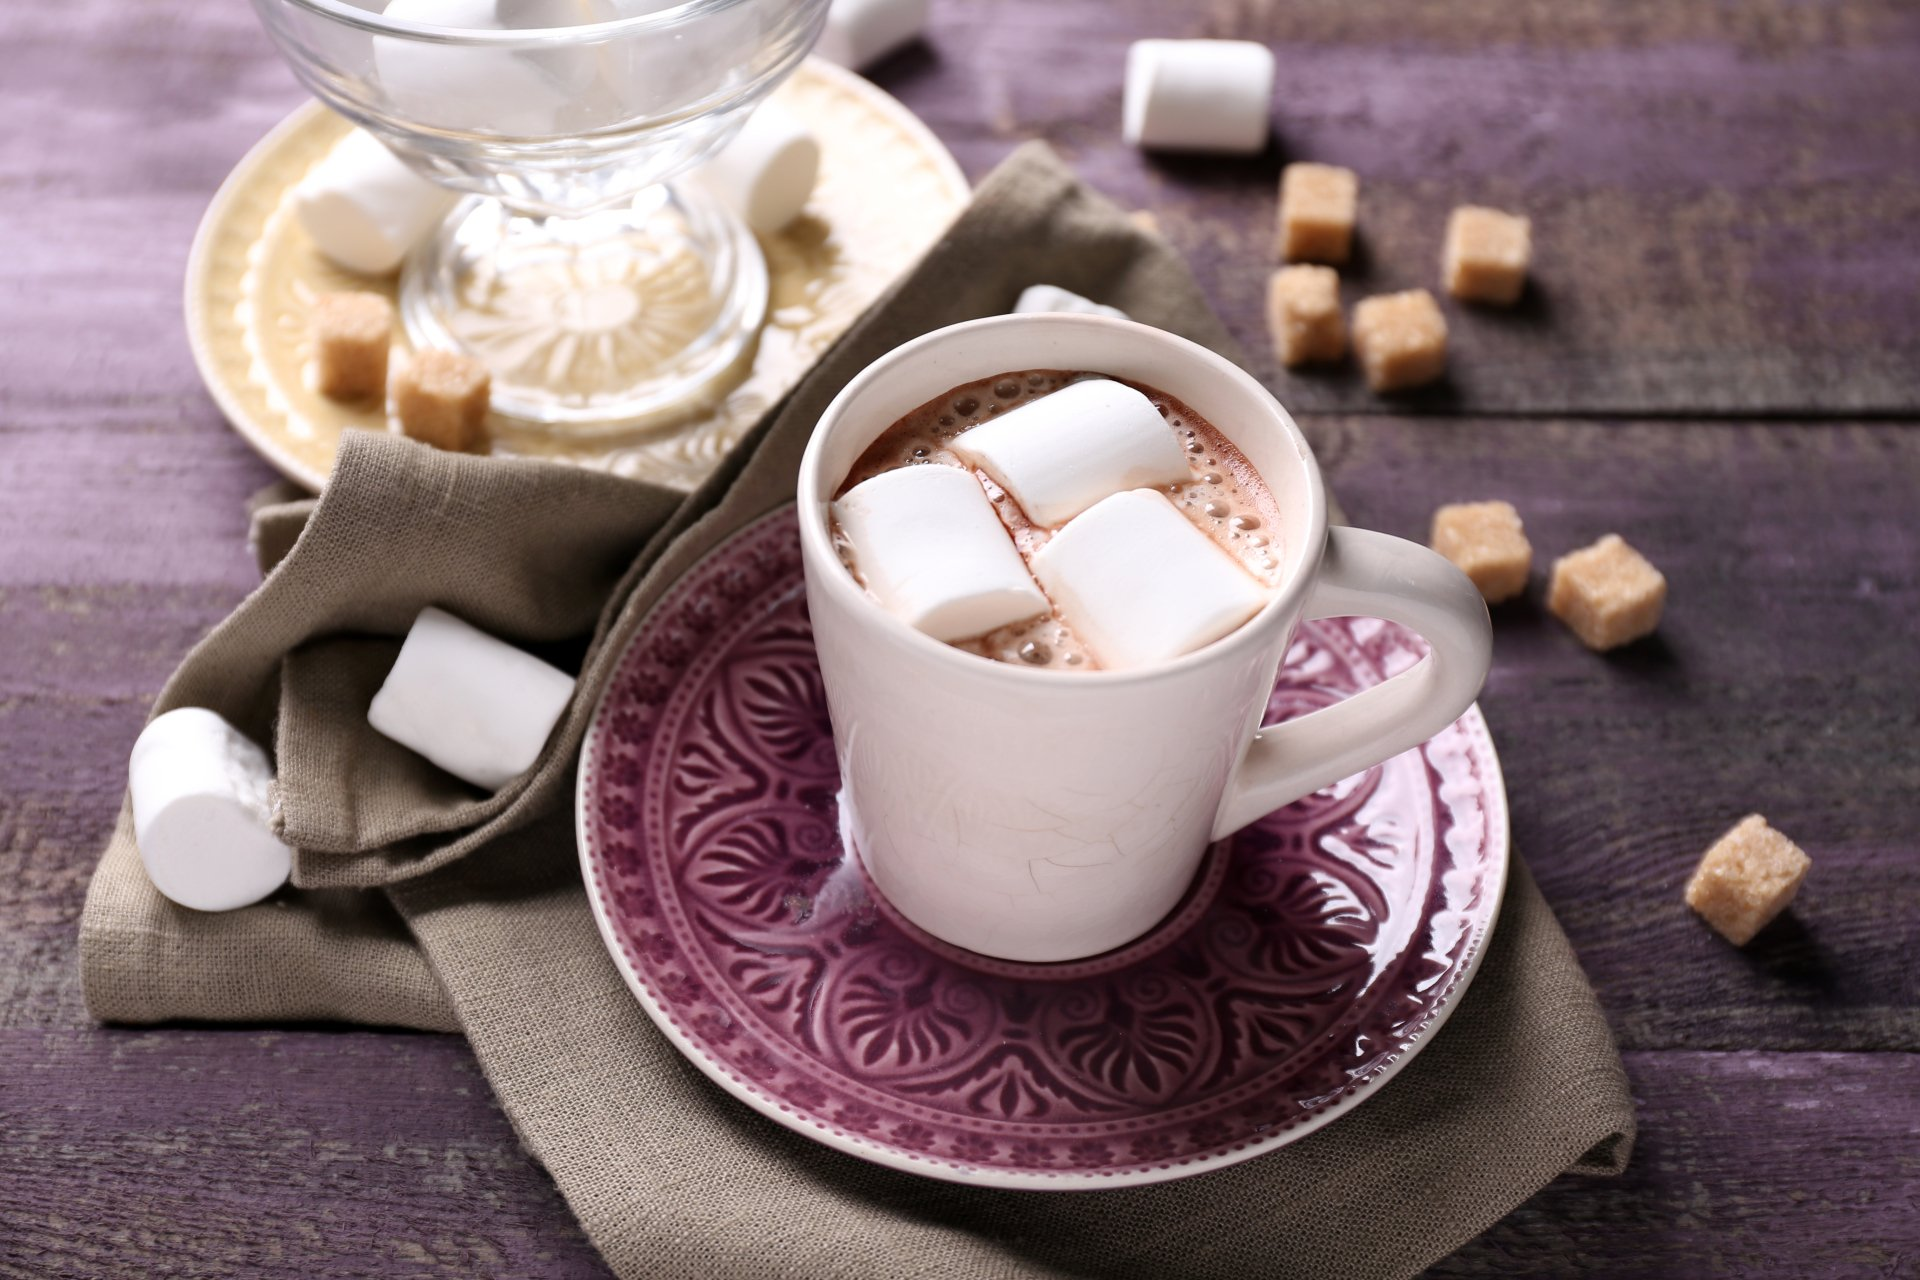 Food - Hot Chocolate  Still Life Cup Sugar Marshmallow Wallpaper